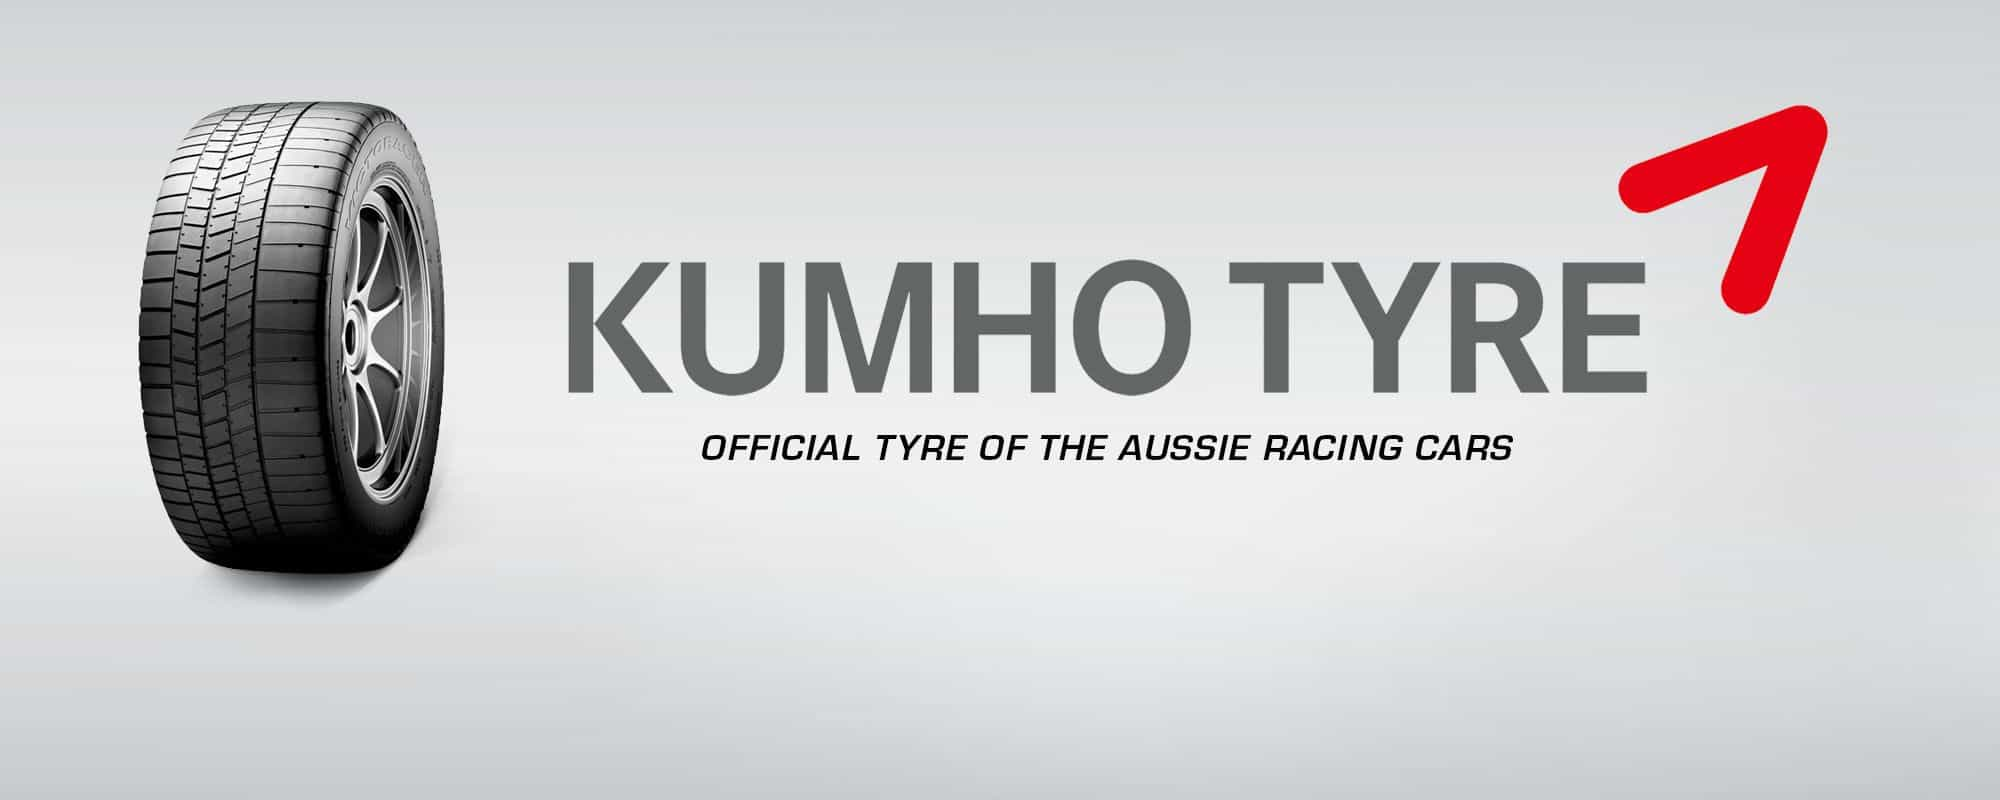 Kumho Driving the Aussie Racing Cars with an all new tyre